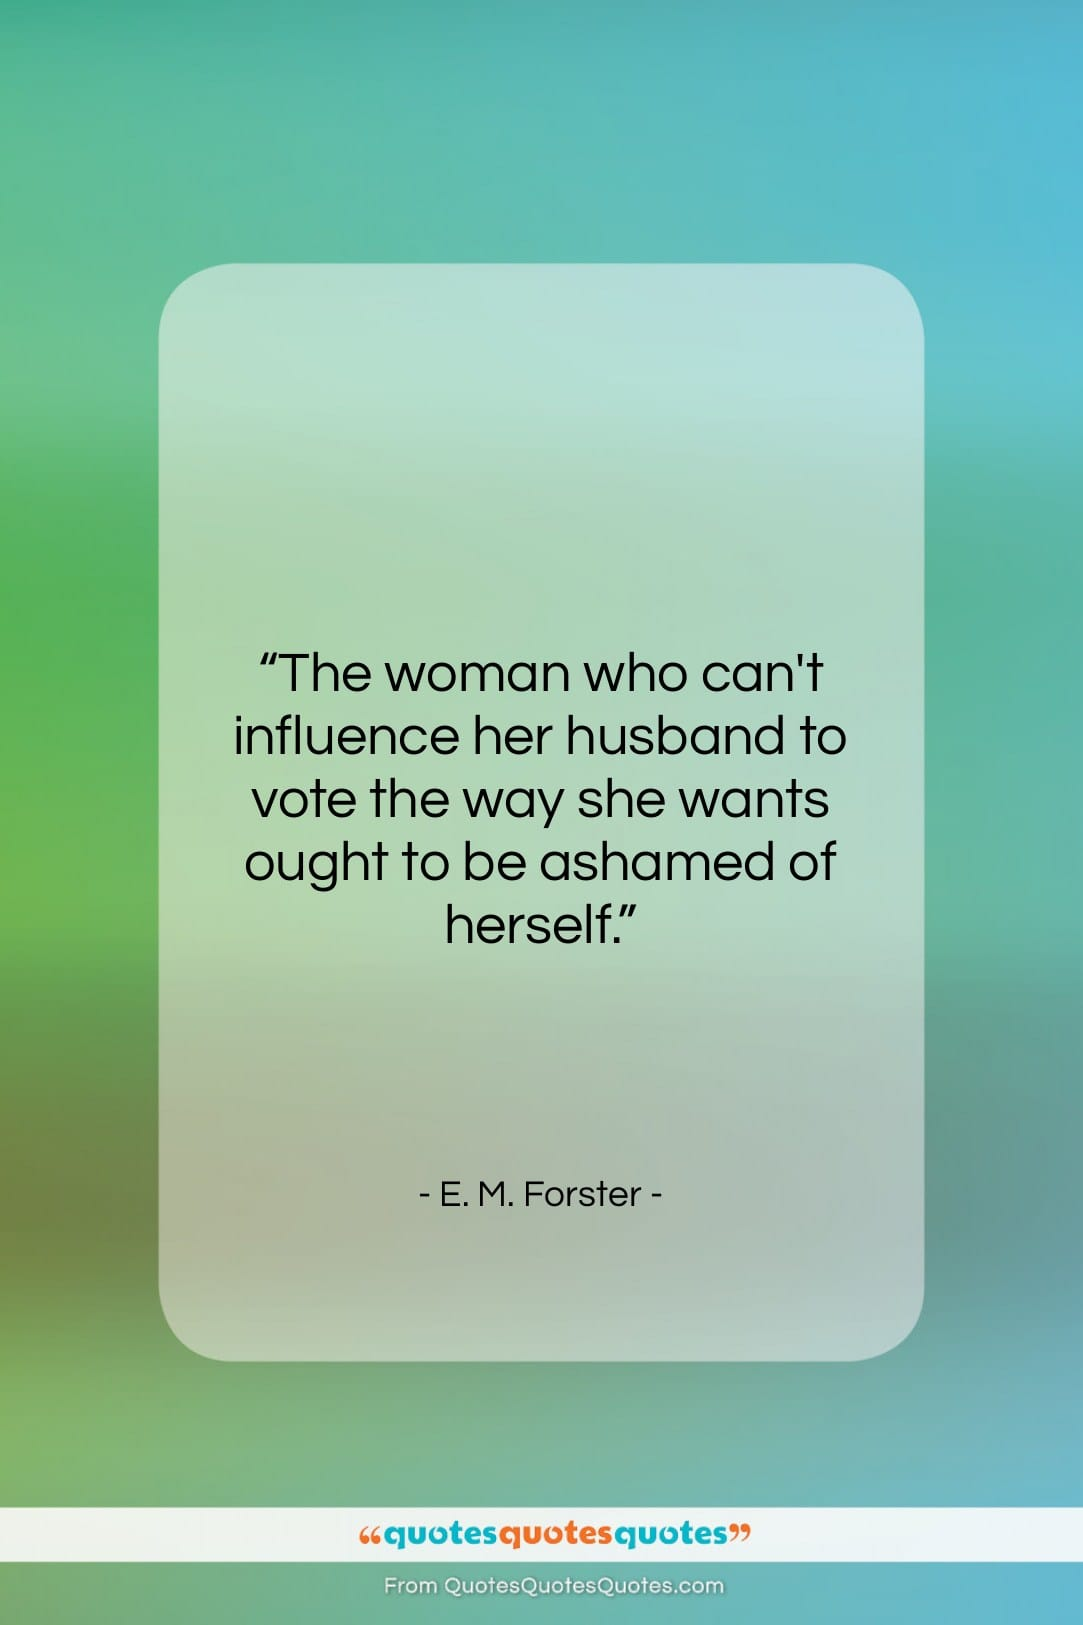 """E. M. Forster quote: """"The woman who can't influence her husband…""""- at QuotesQuotesQuotes.com"""